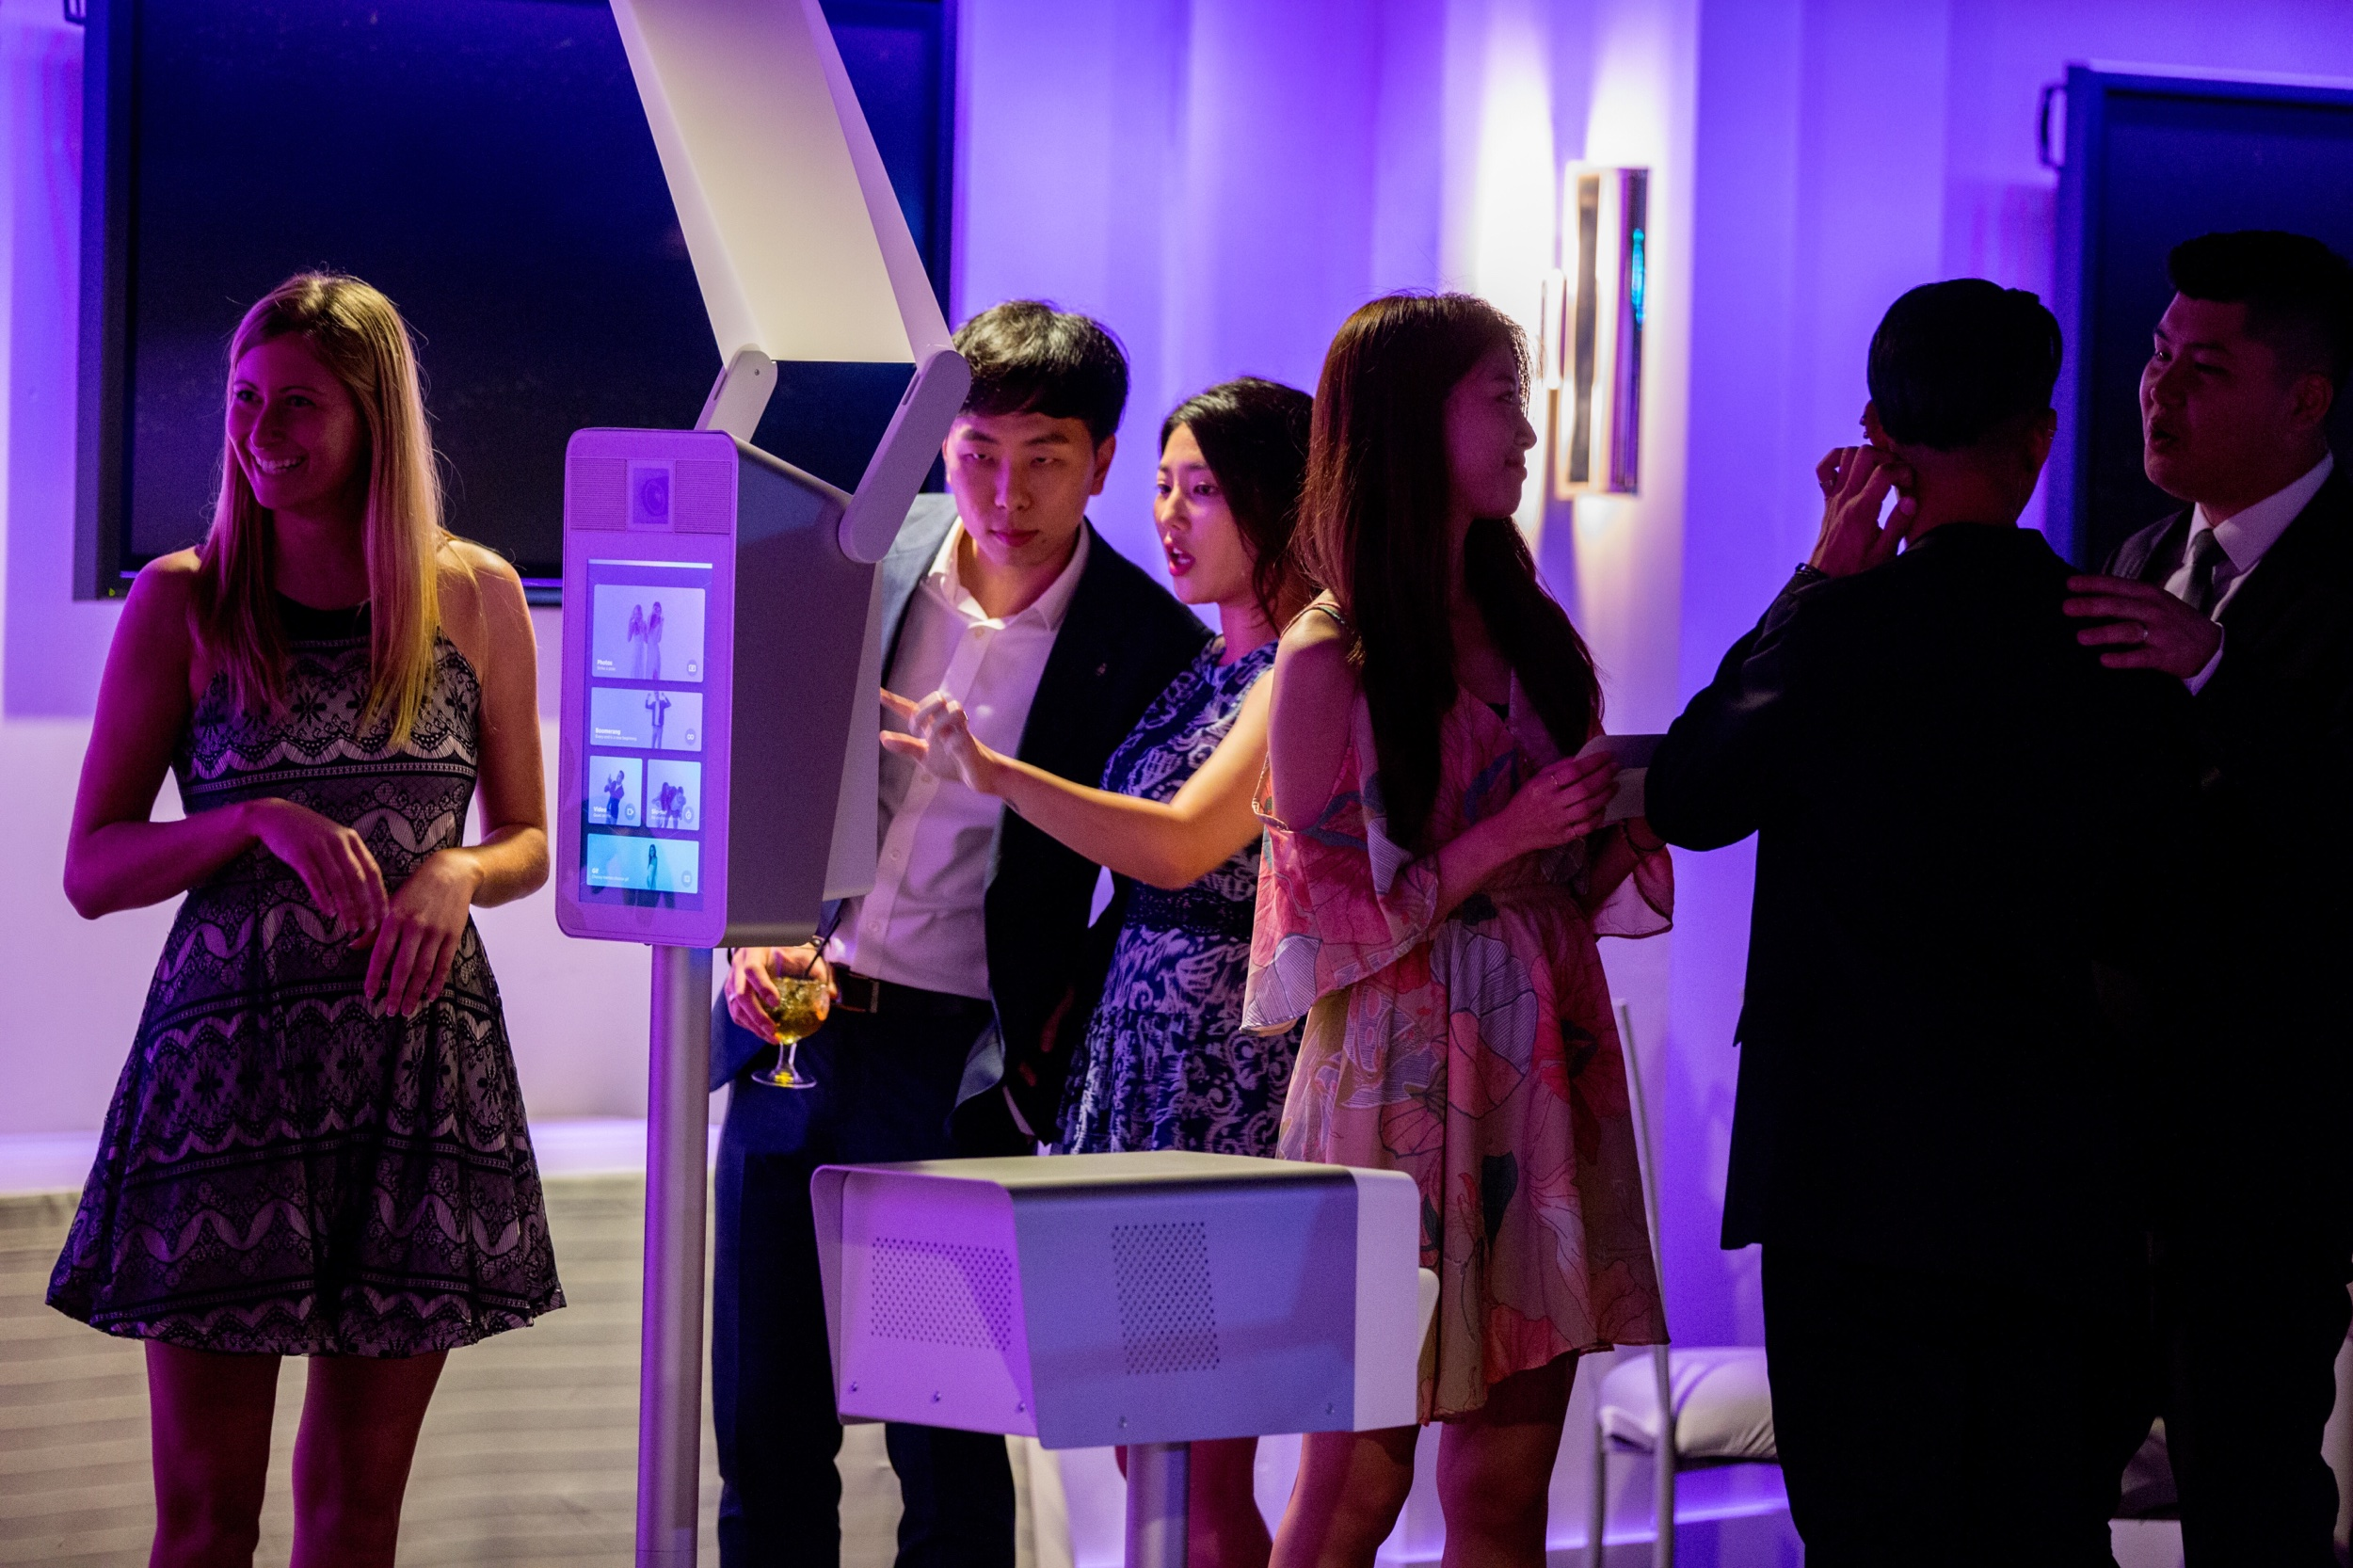 What Does an Elevated Photobooth ATTENDANT DO? -